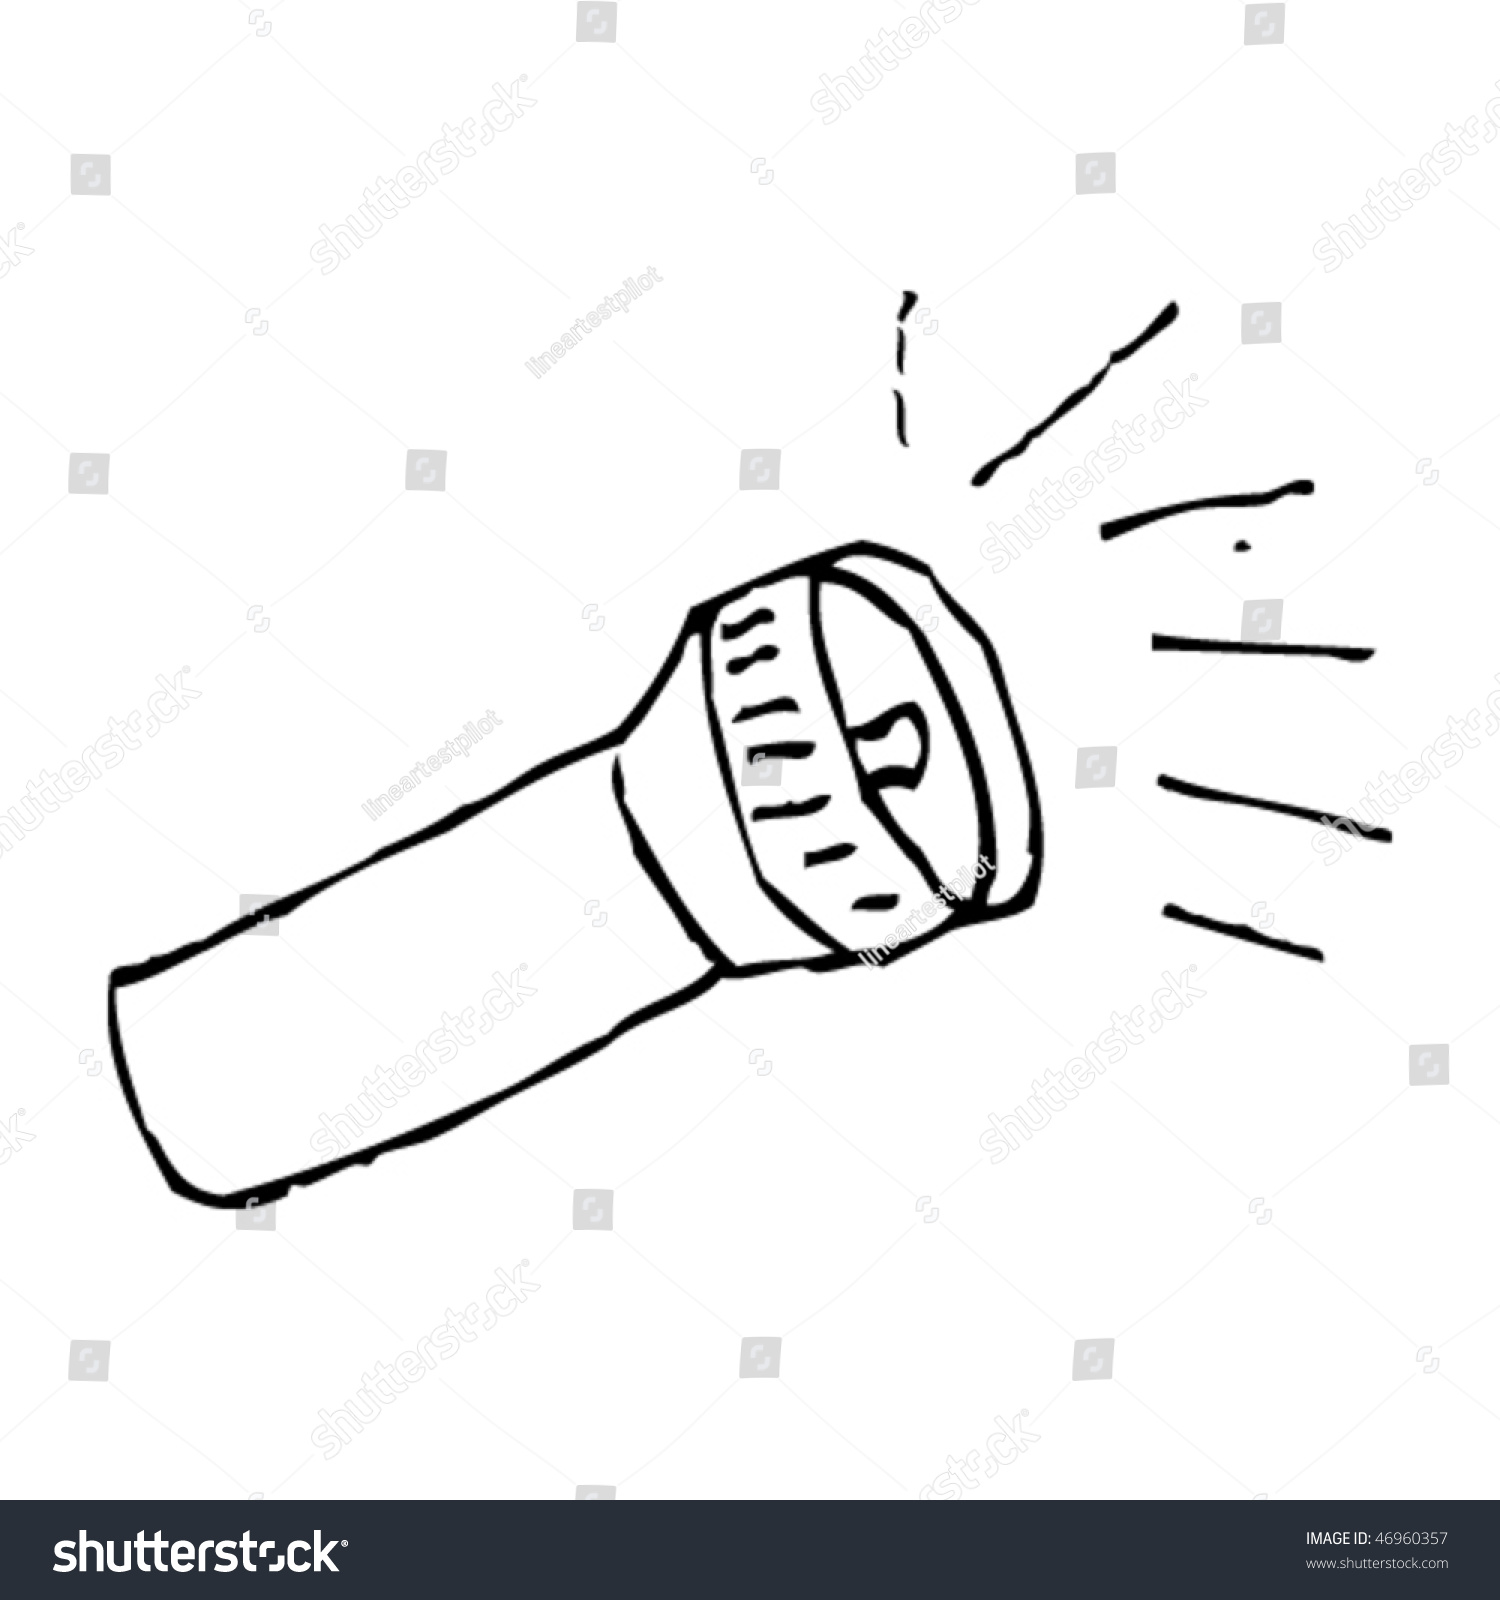 Image Result For Royalty Free Quirky Music